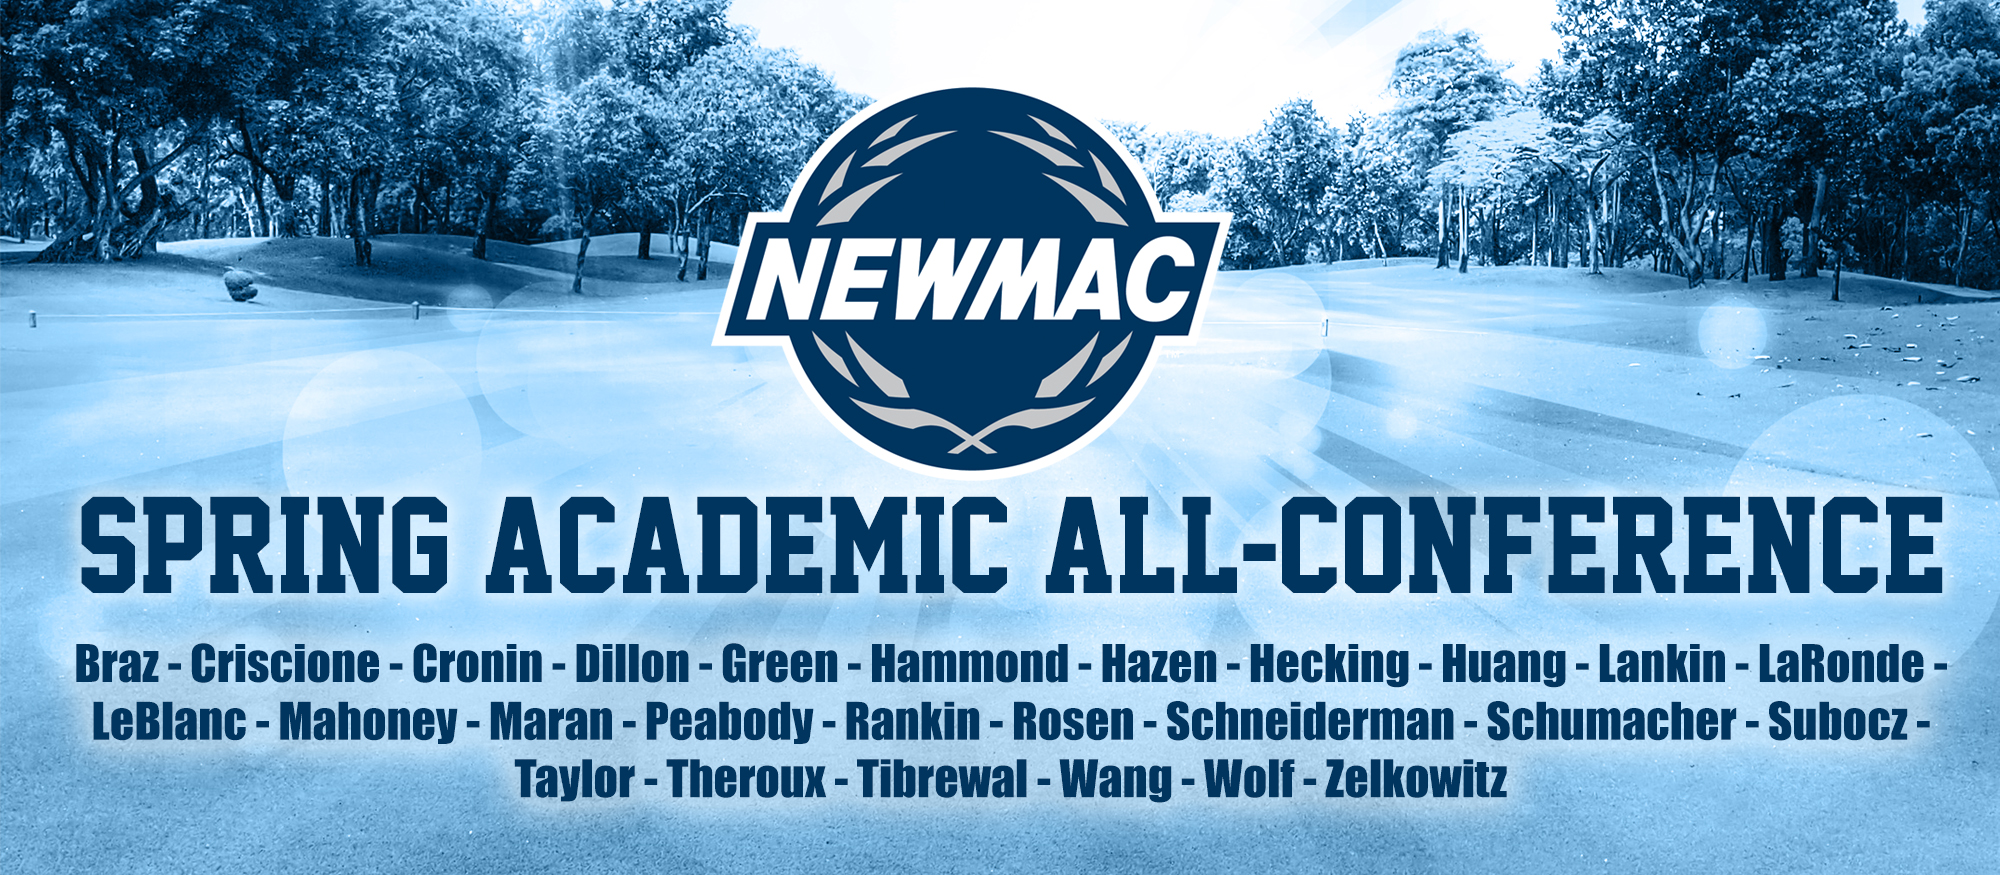 Graphic depicting the 26 student-athletes named to the 2018 NEWMAC Spring Academic All-Conference Team.